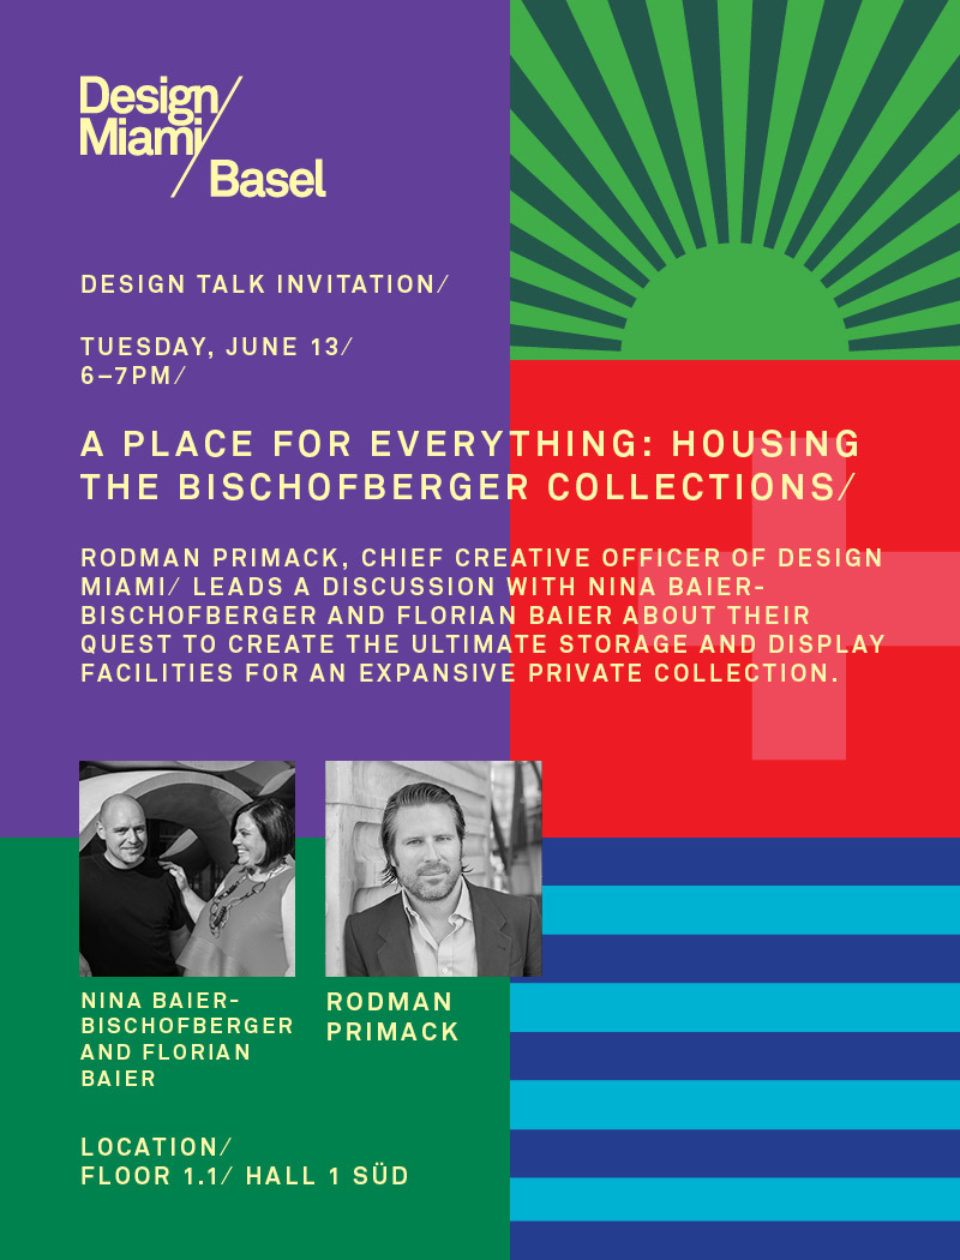 Speaking at Design Miami / Basel